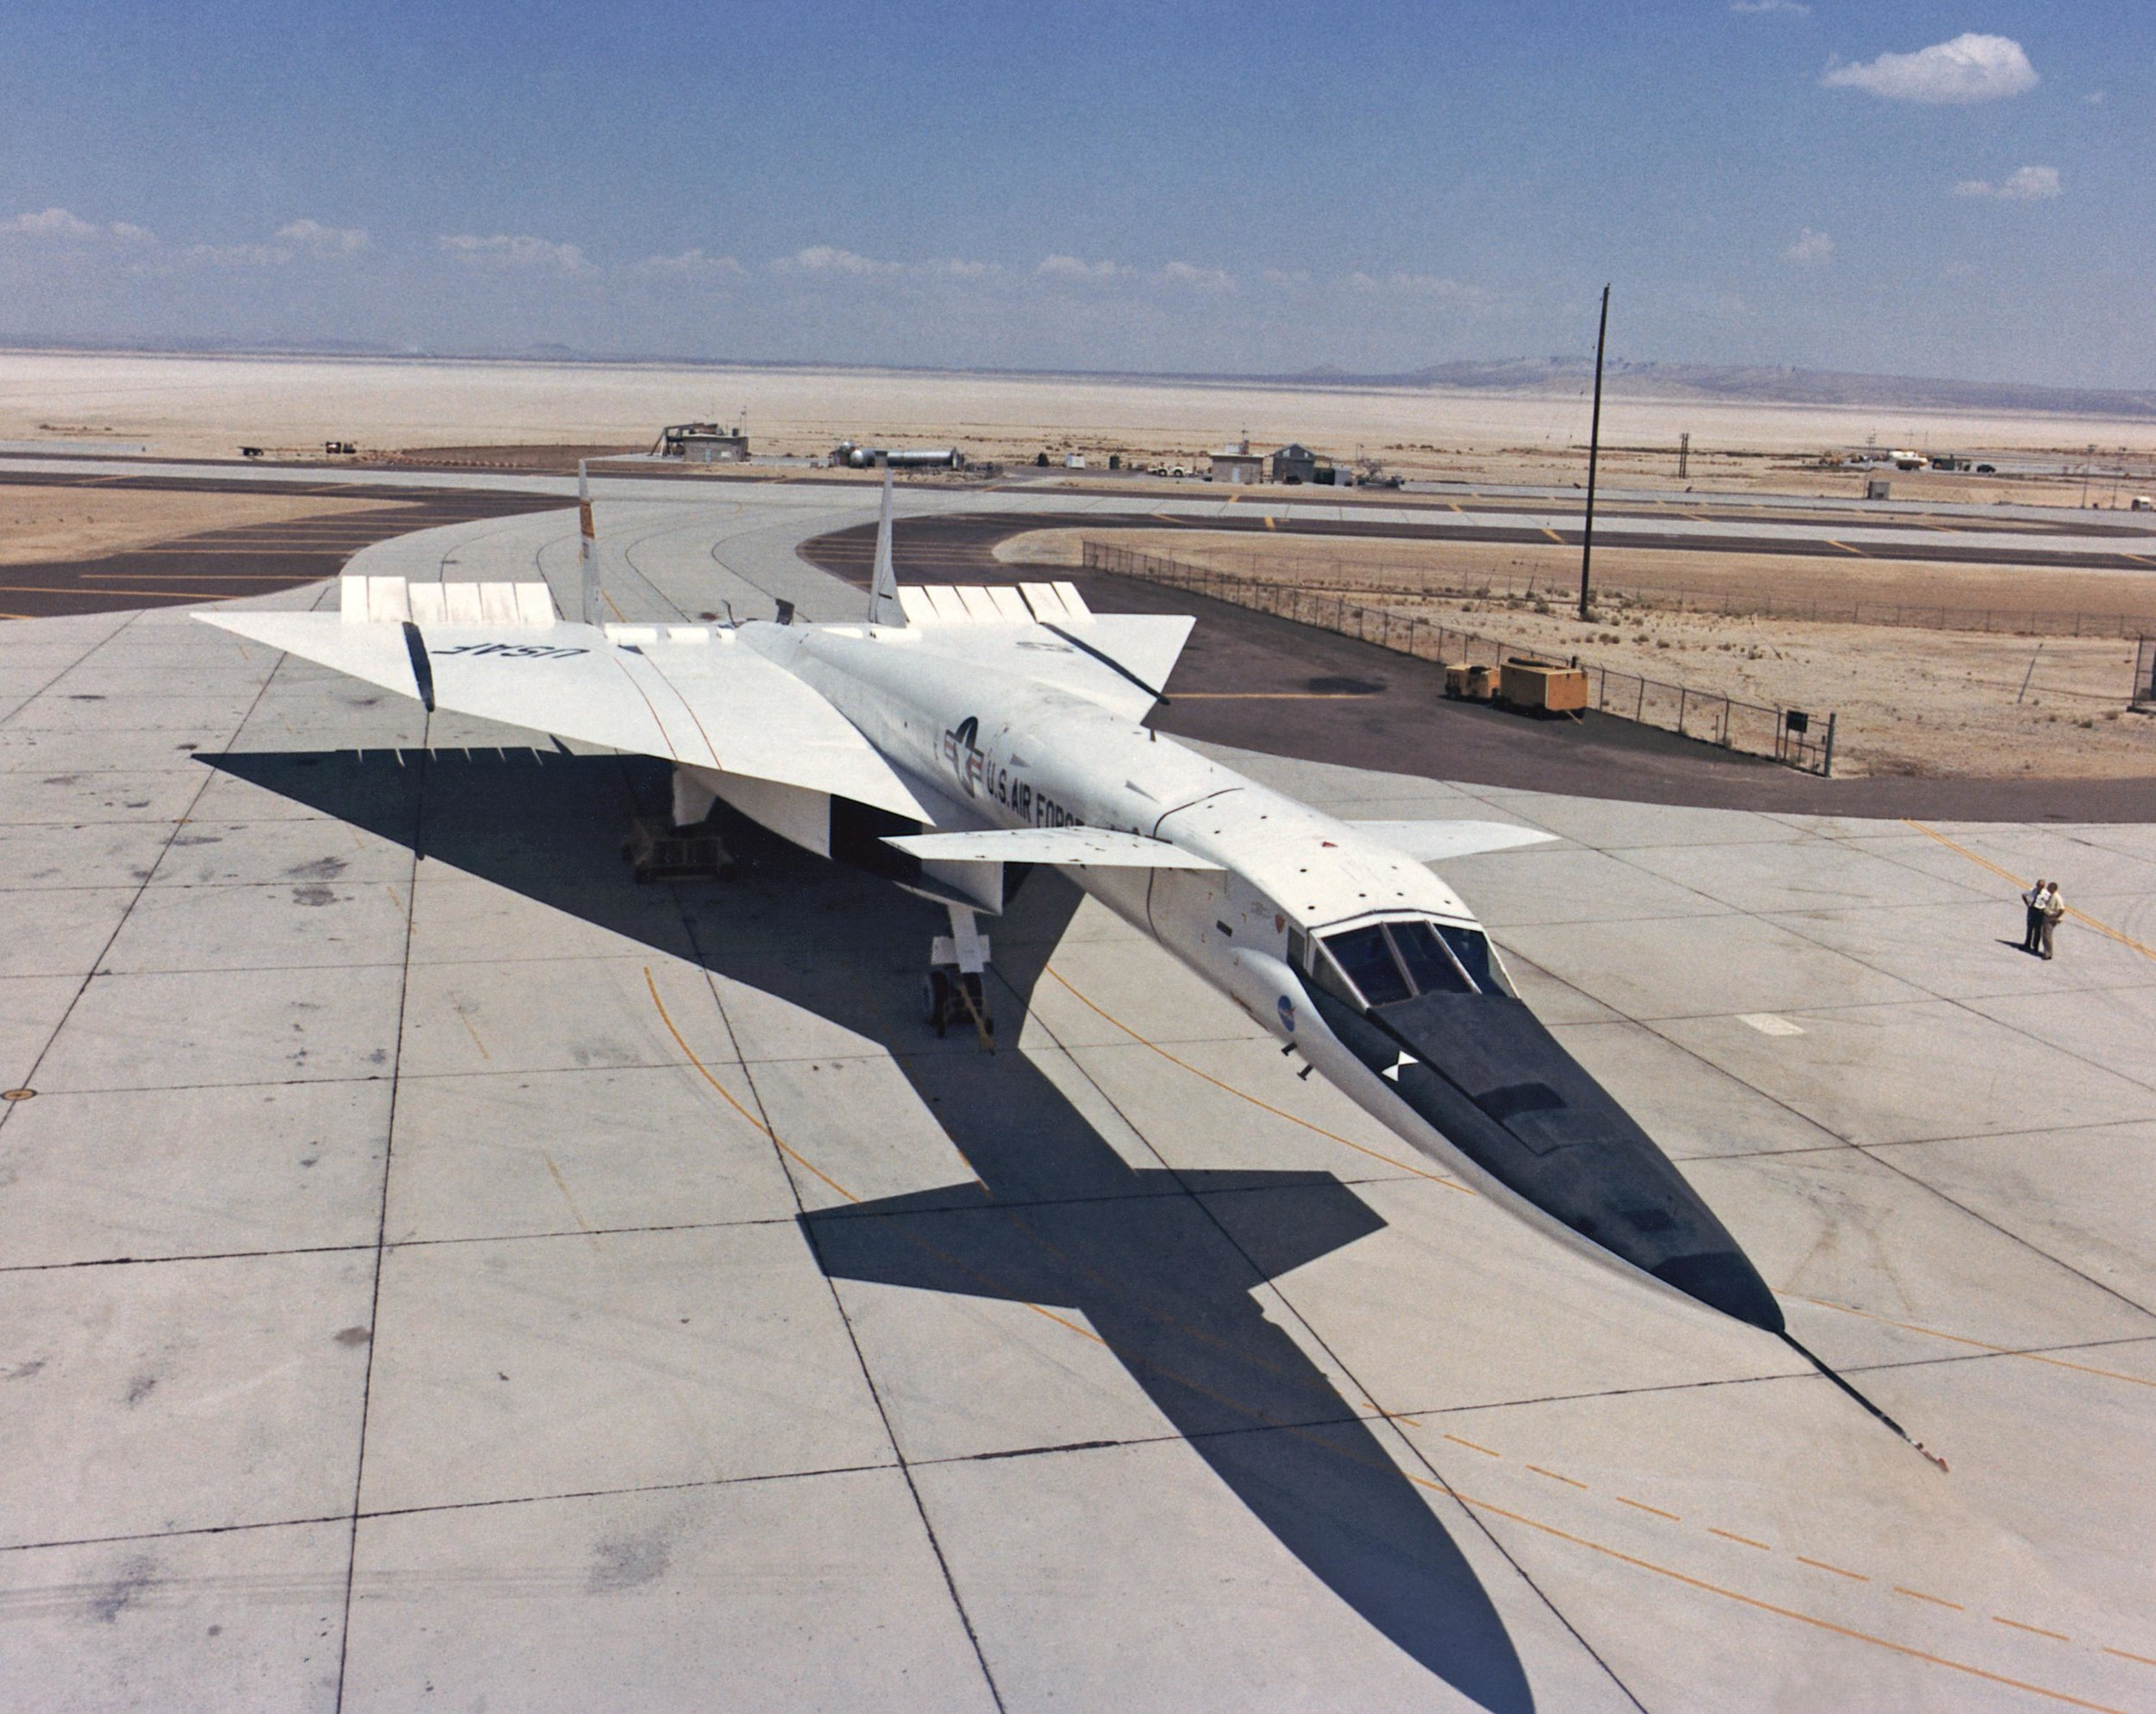 XB-70A Valkyrie on ramp. (Source: NASA)